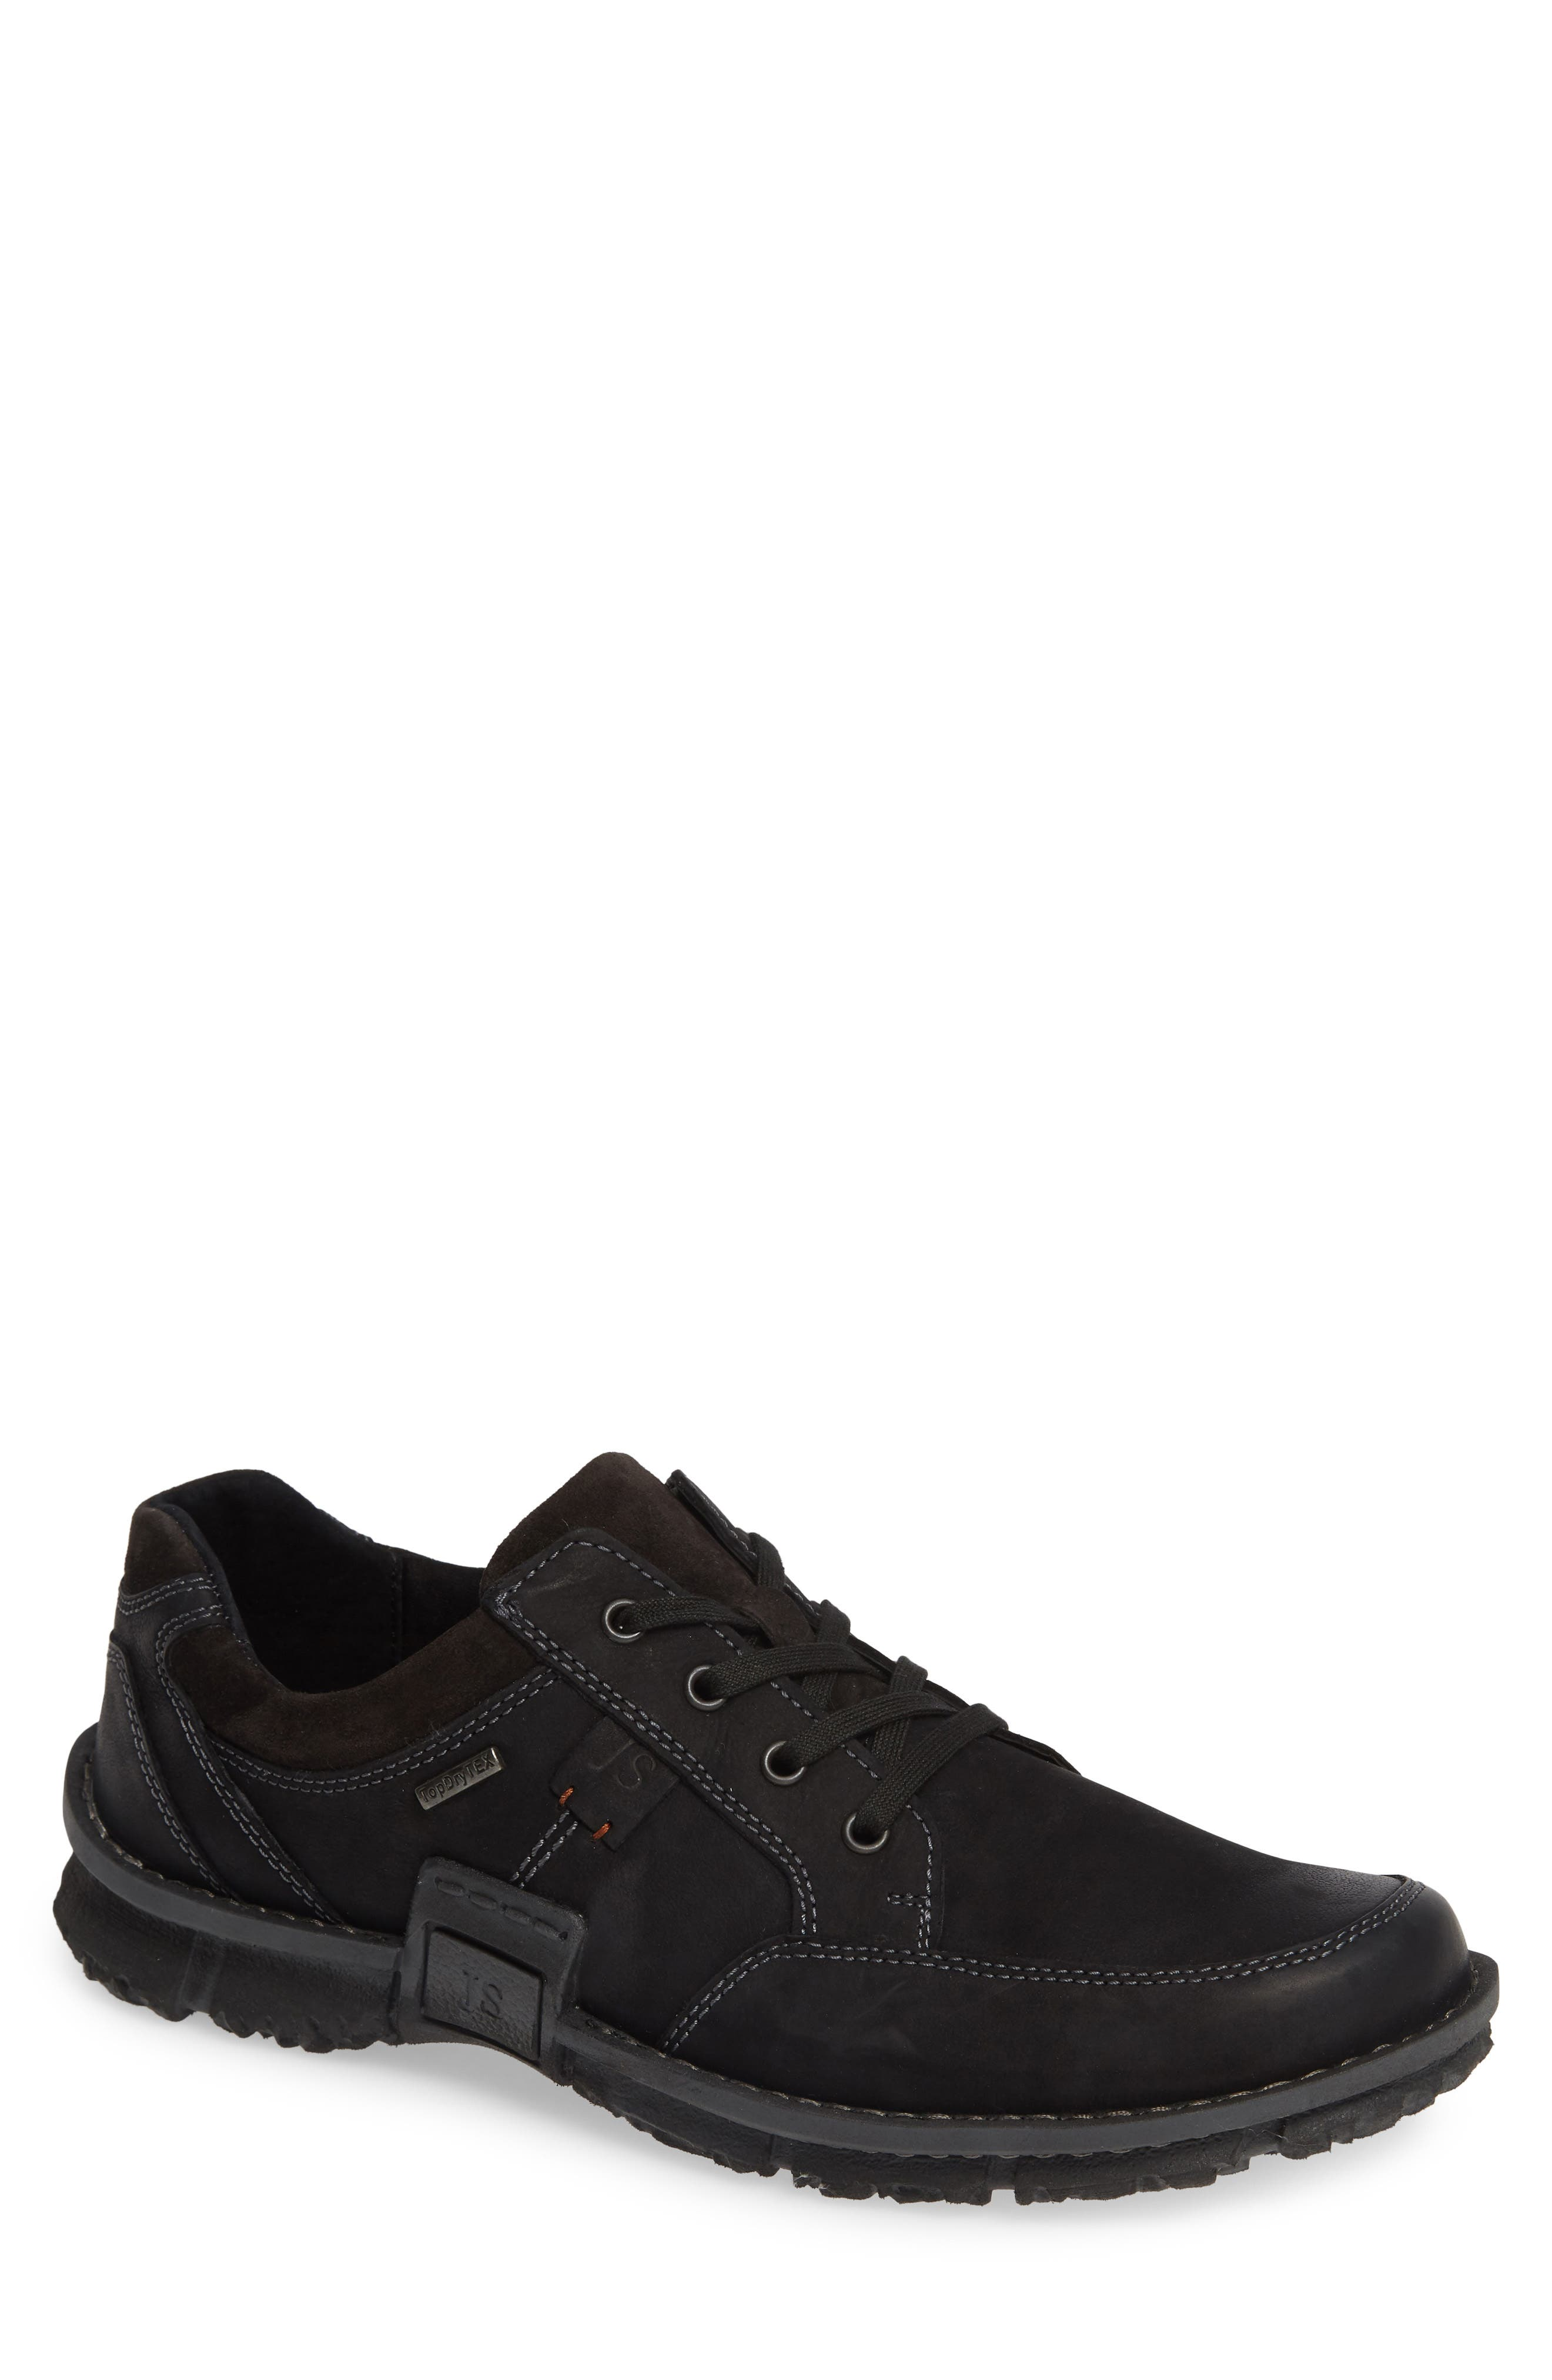 JOSEF SEIBEL Willow 33 Sneaker, Main, color, BLACK LEATHER